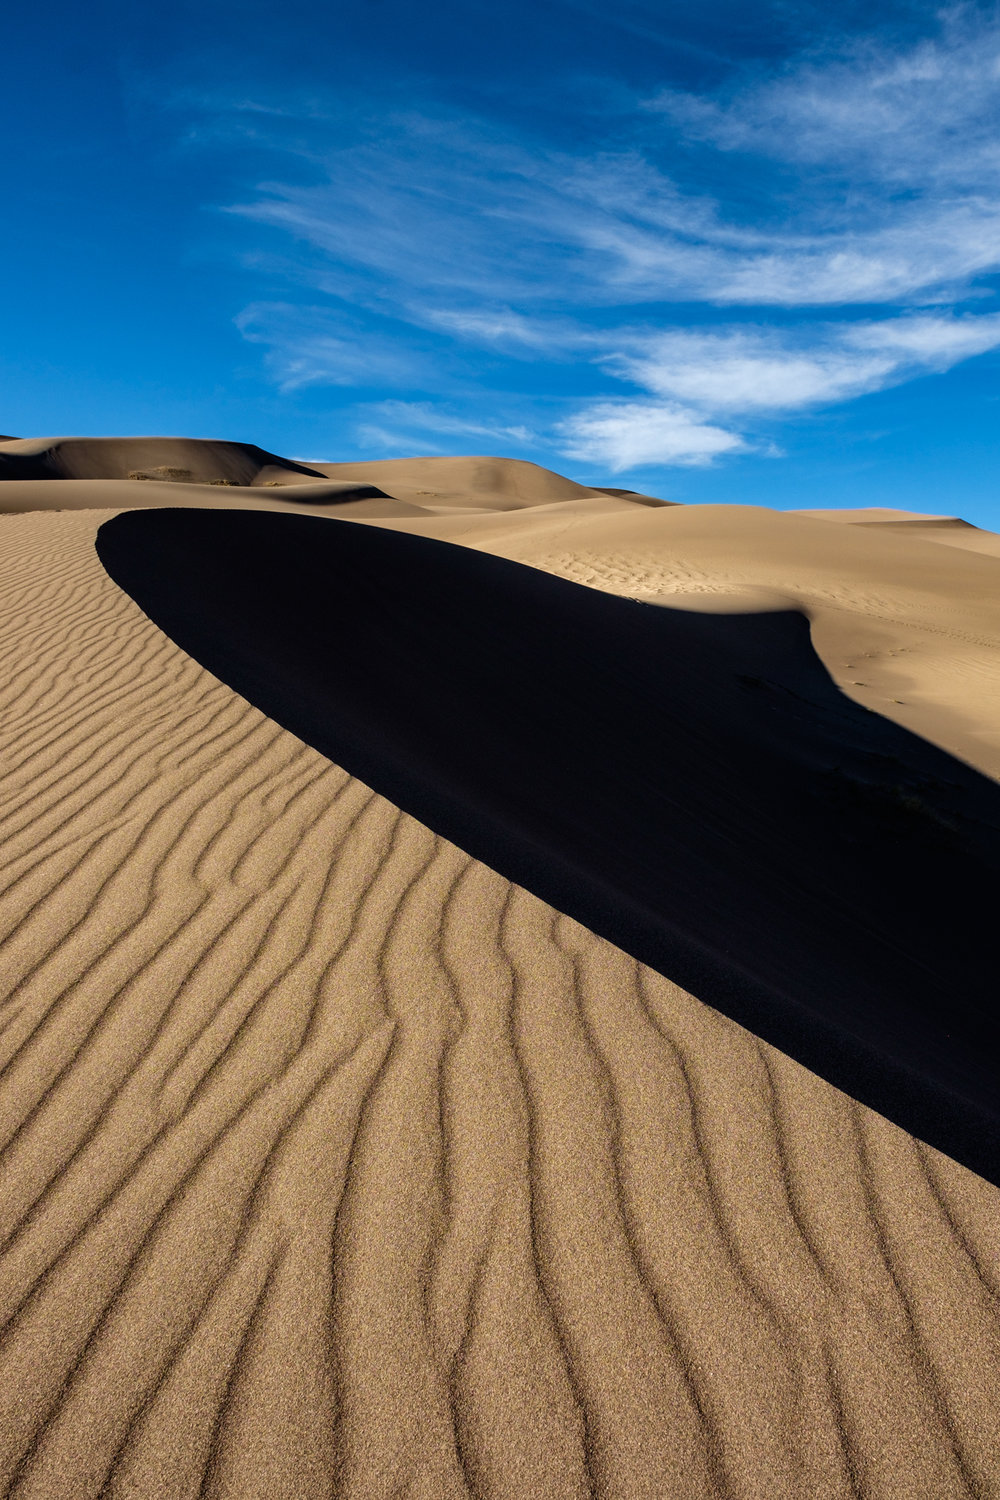 The play of light and shadow on the dunes never ceases to amaze.